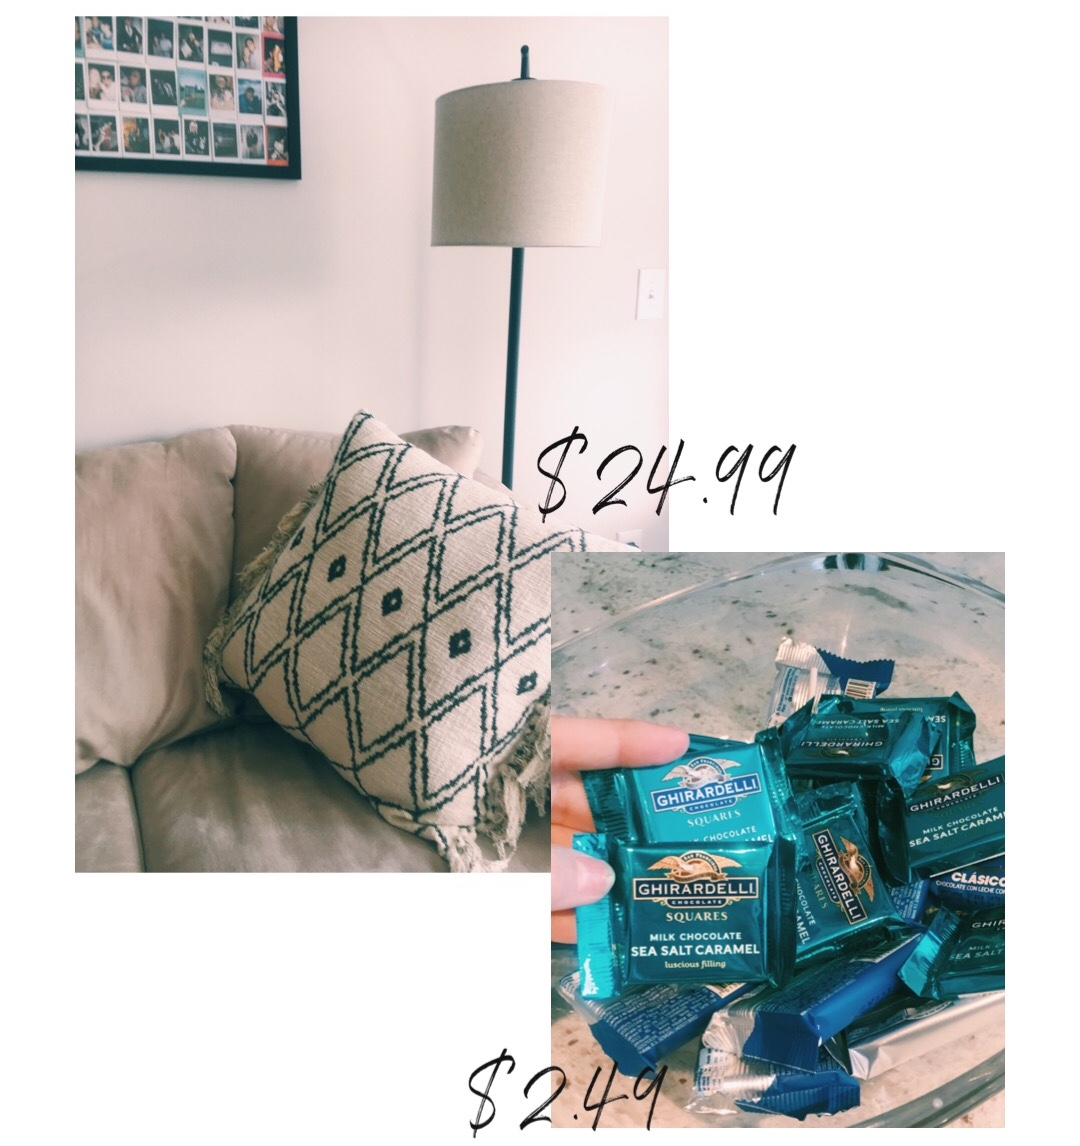 Recent TJ Maxx & Home Goods Finds